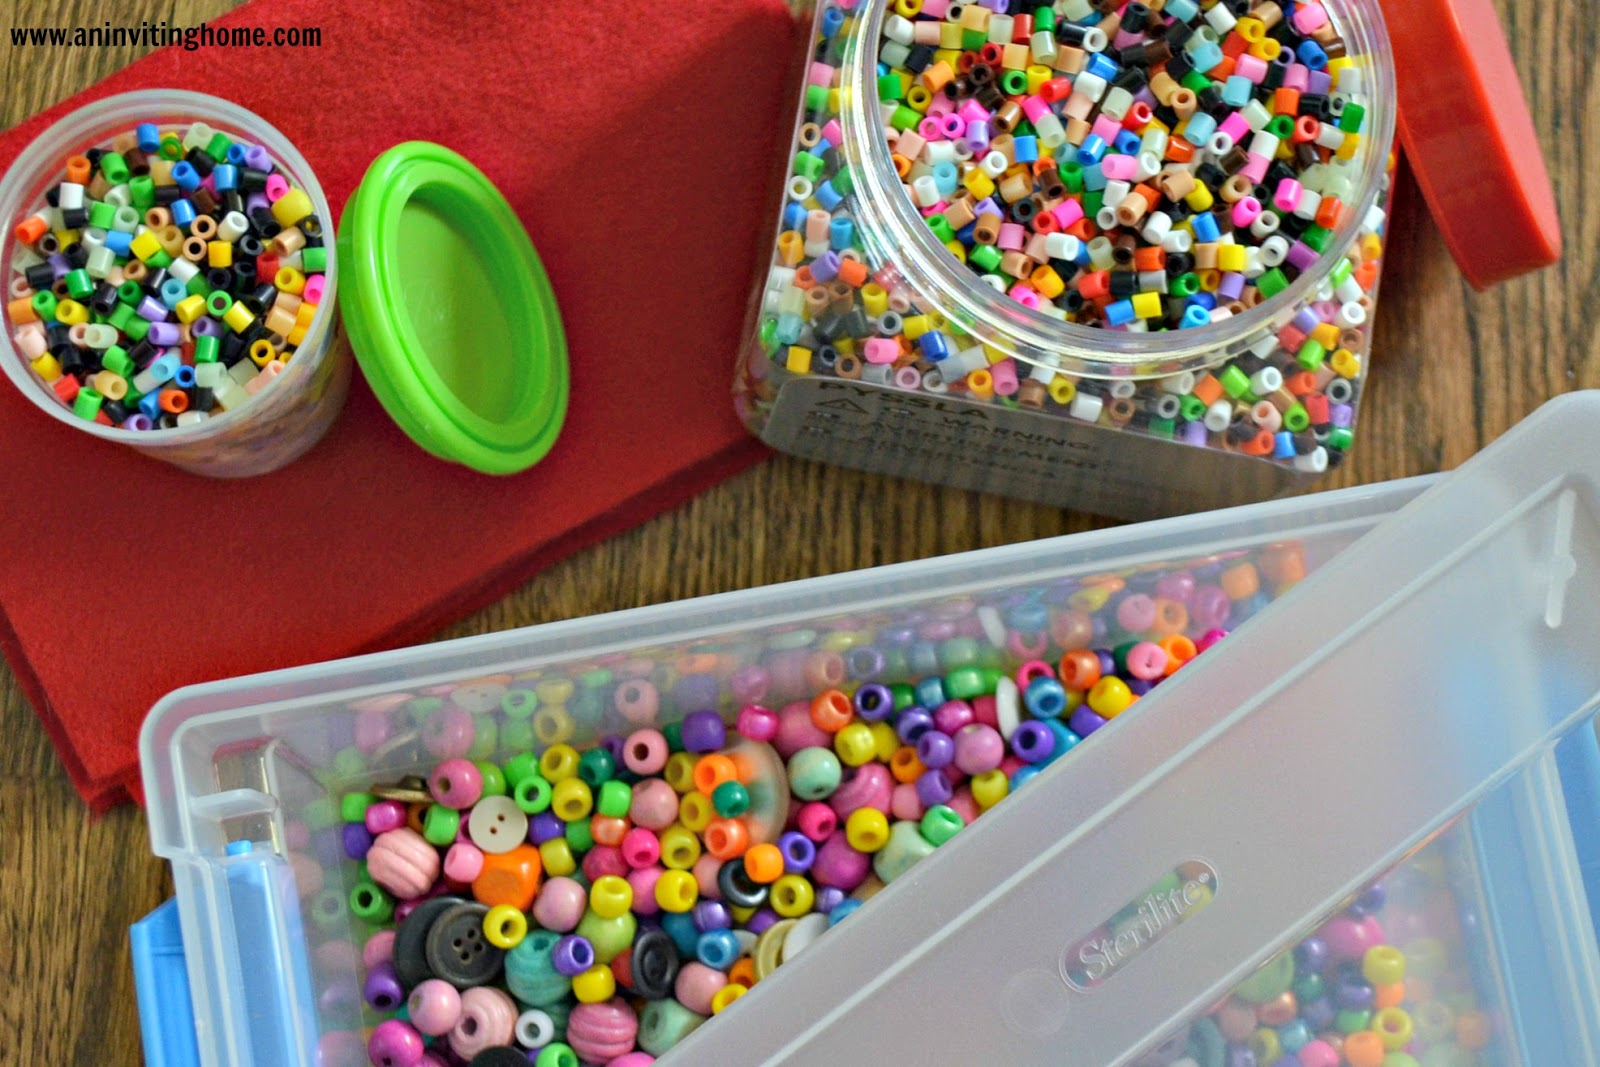 small containers to store beads